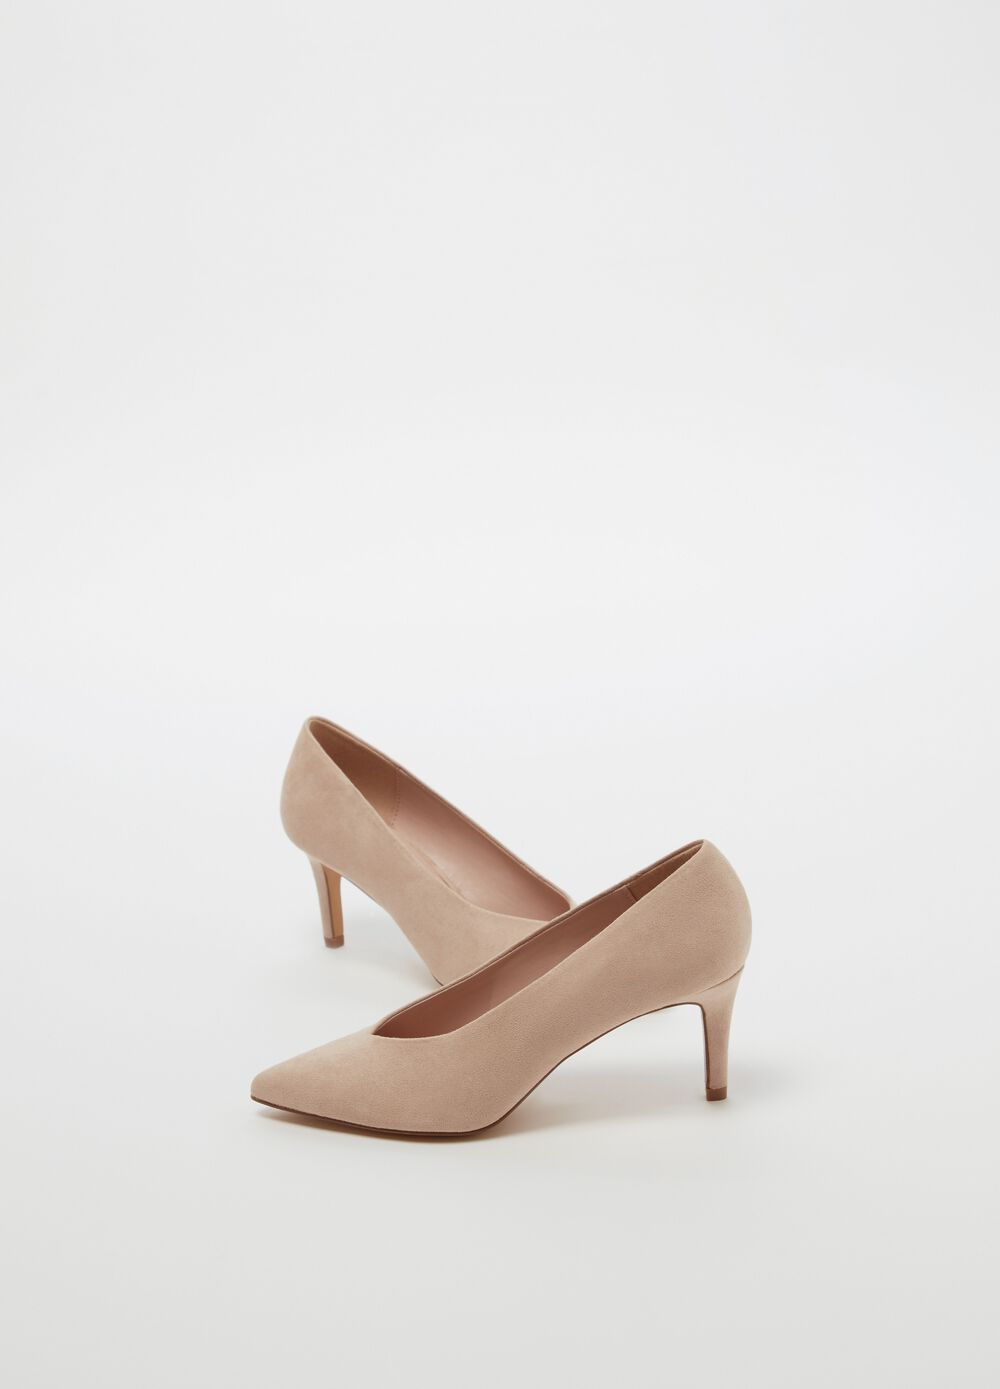 Court shoe with high stiletto heel